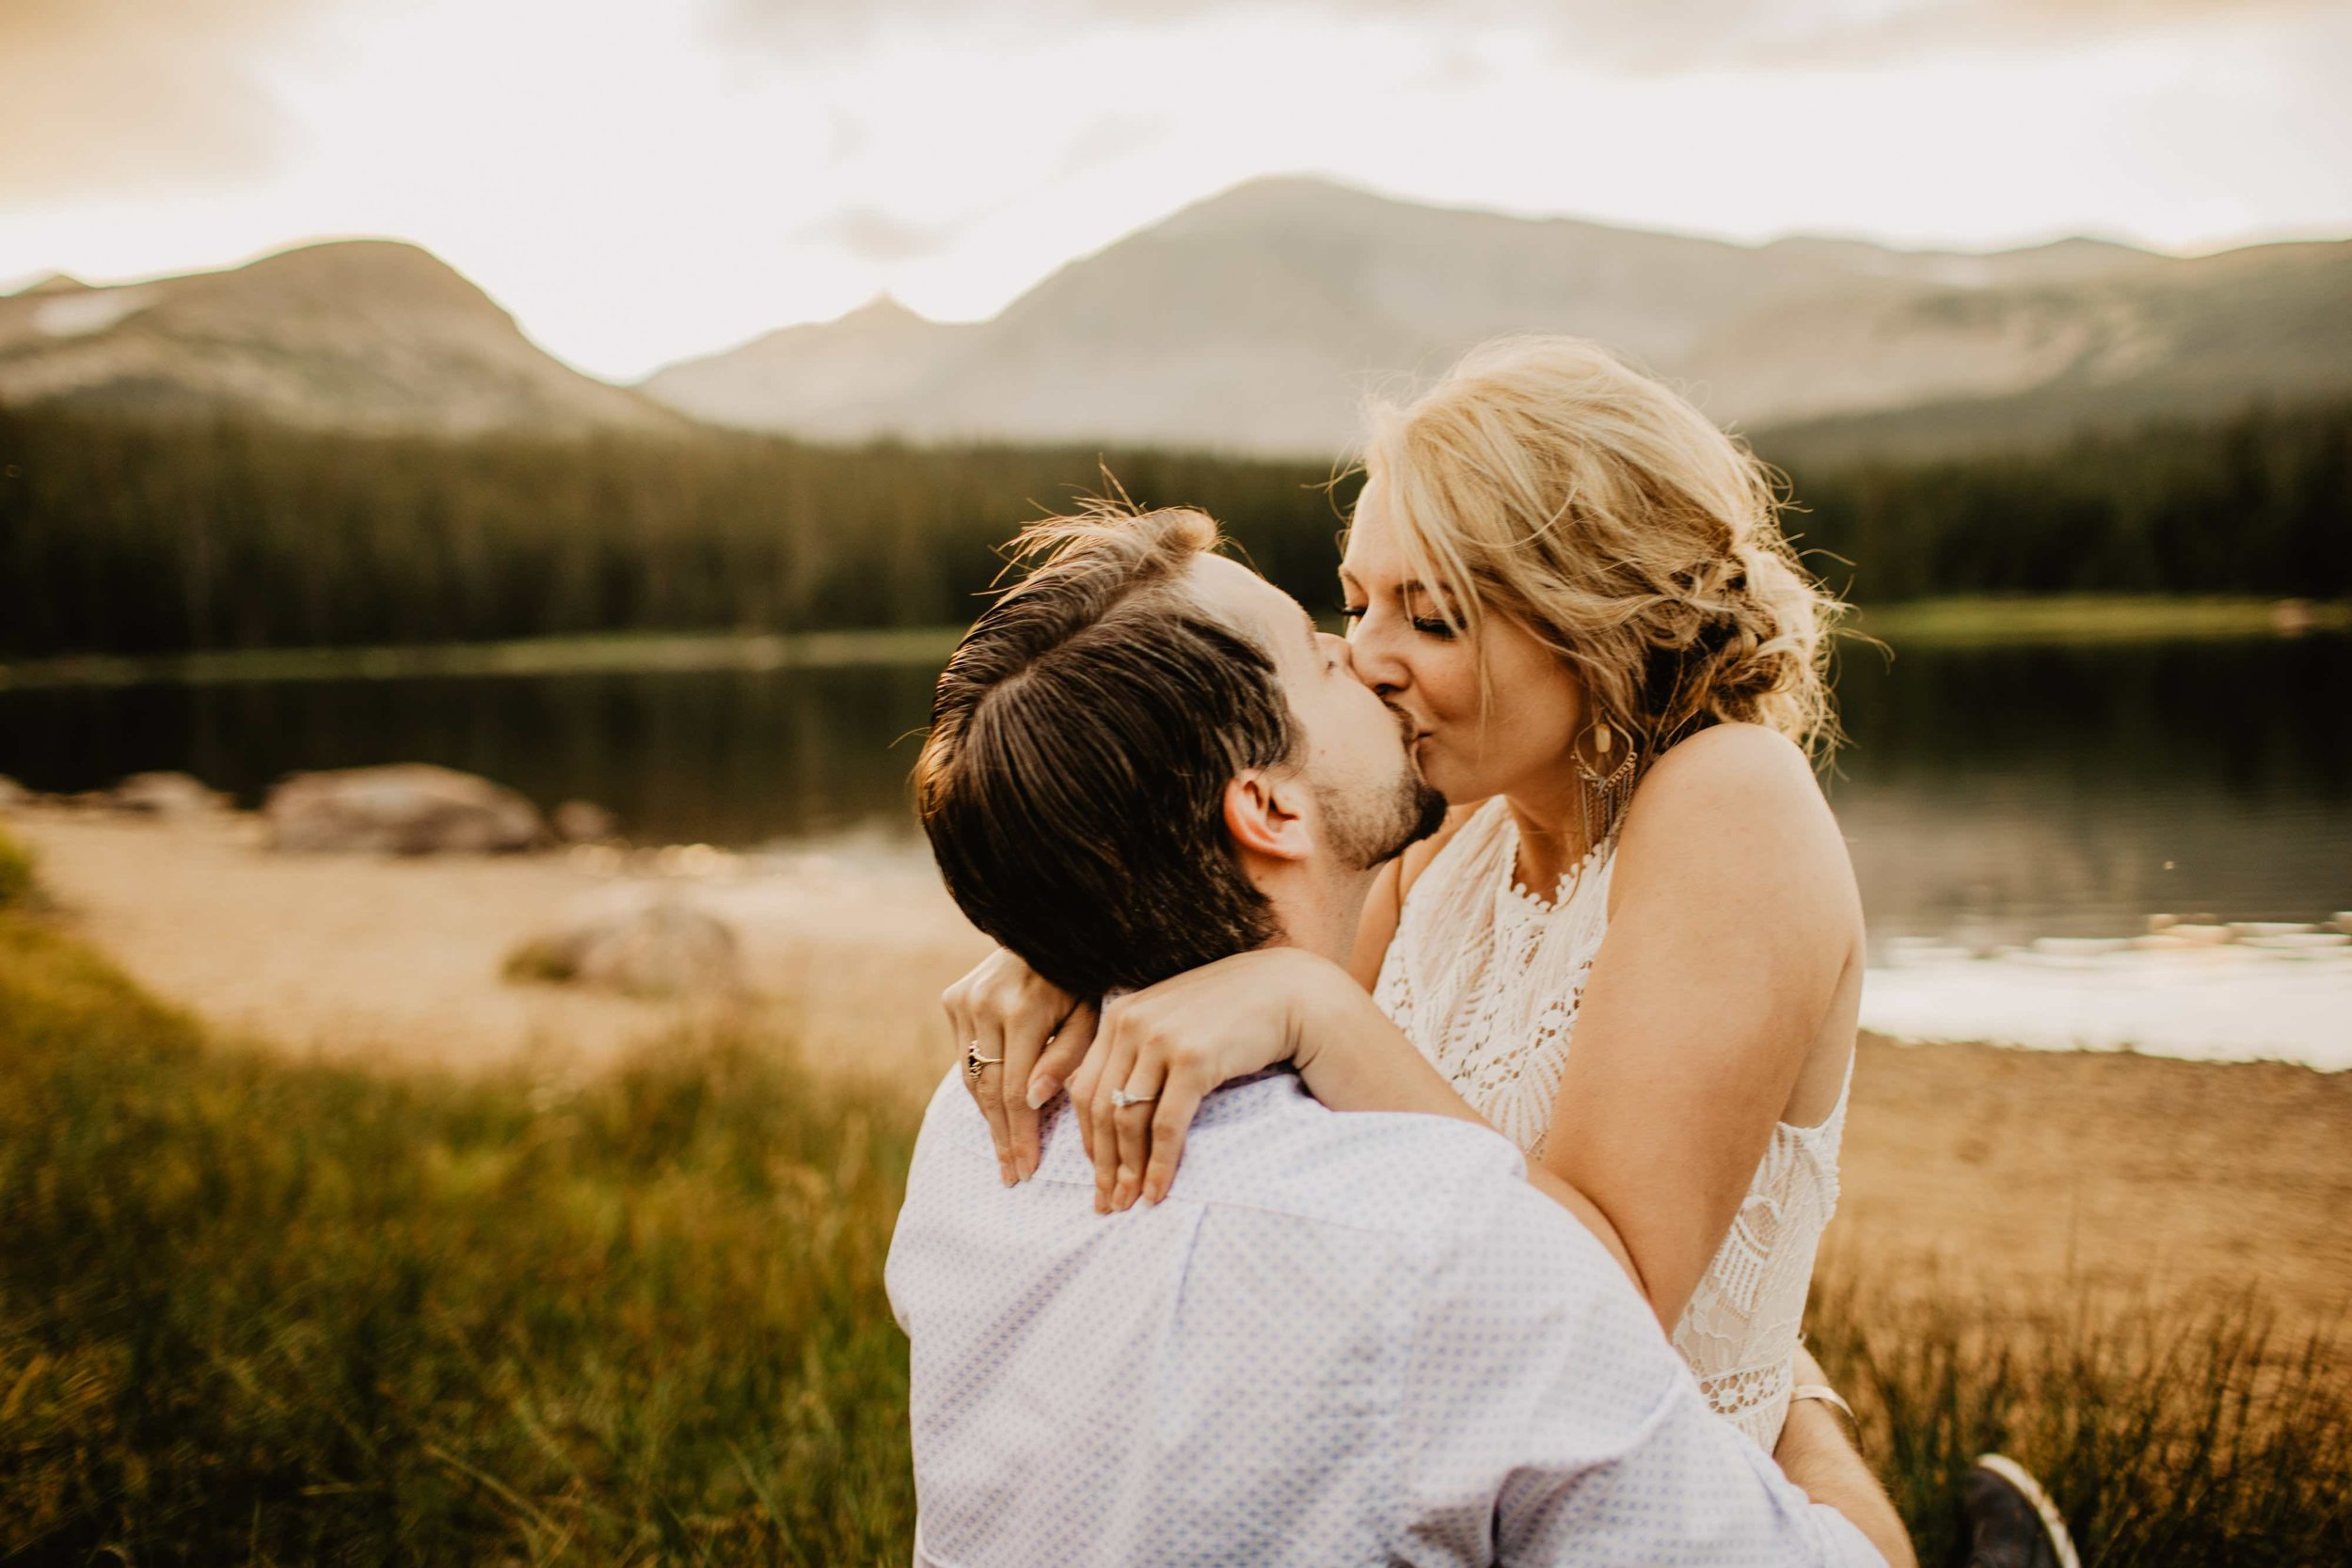 Kisa Conrad Favorites-0022-colorado-wedding-photographer-denver-springs-vail.jpeg